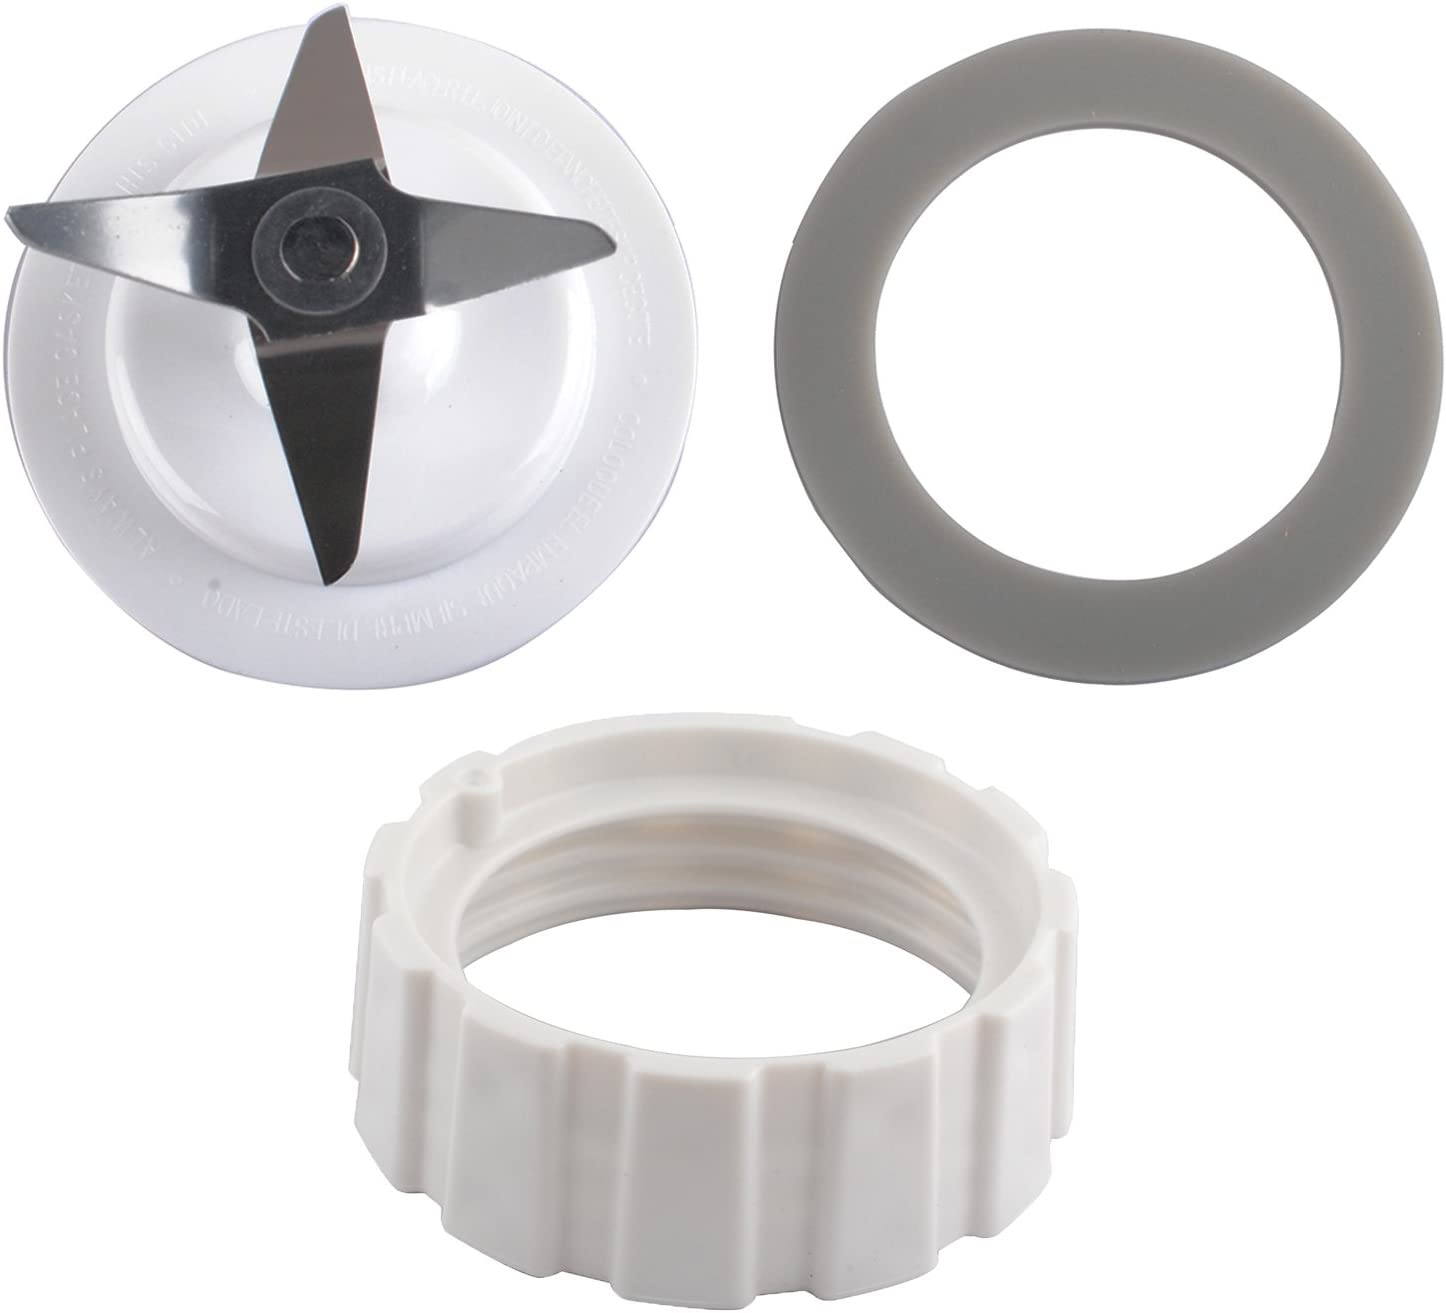 Blade for Hamilton Beach Blender Replacement Mixer Parts with Screw Cap and Rubber Gasket by Wadoy